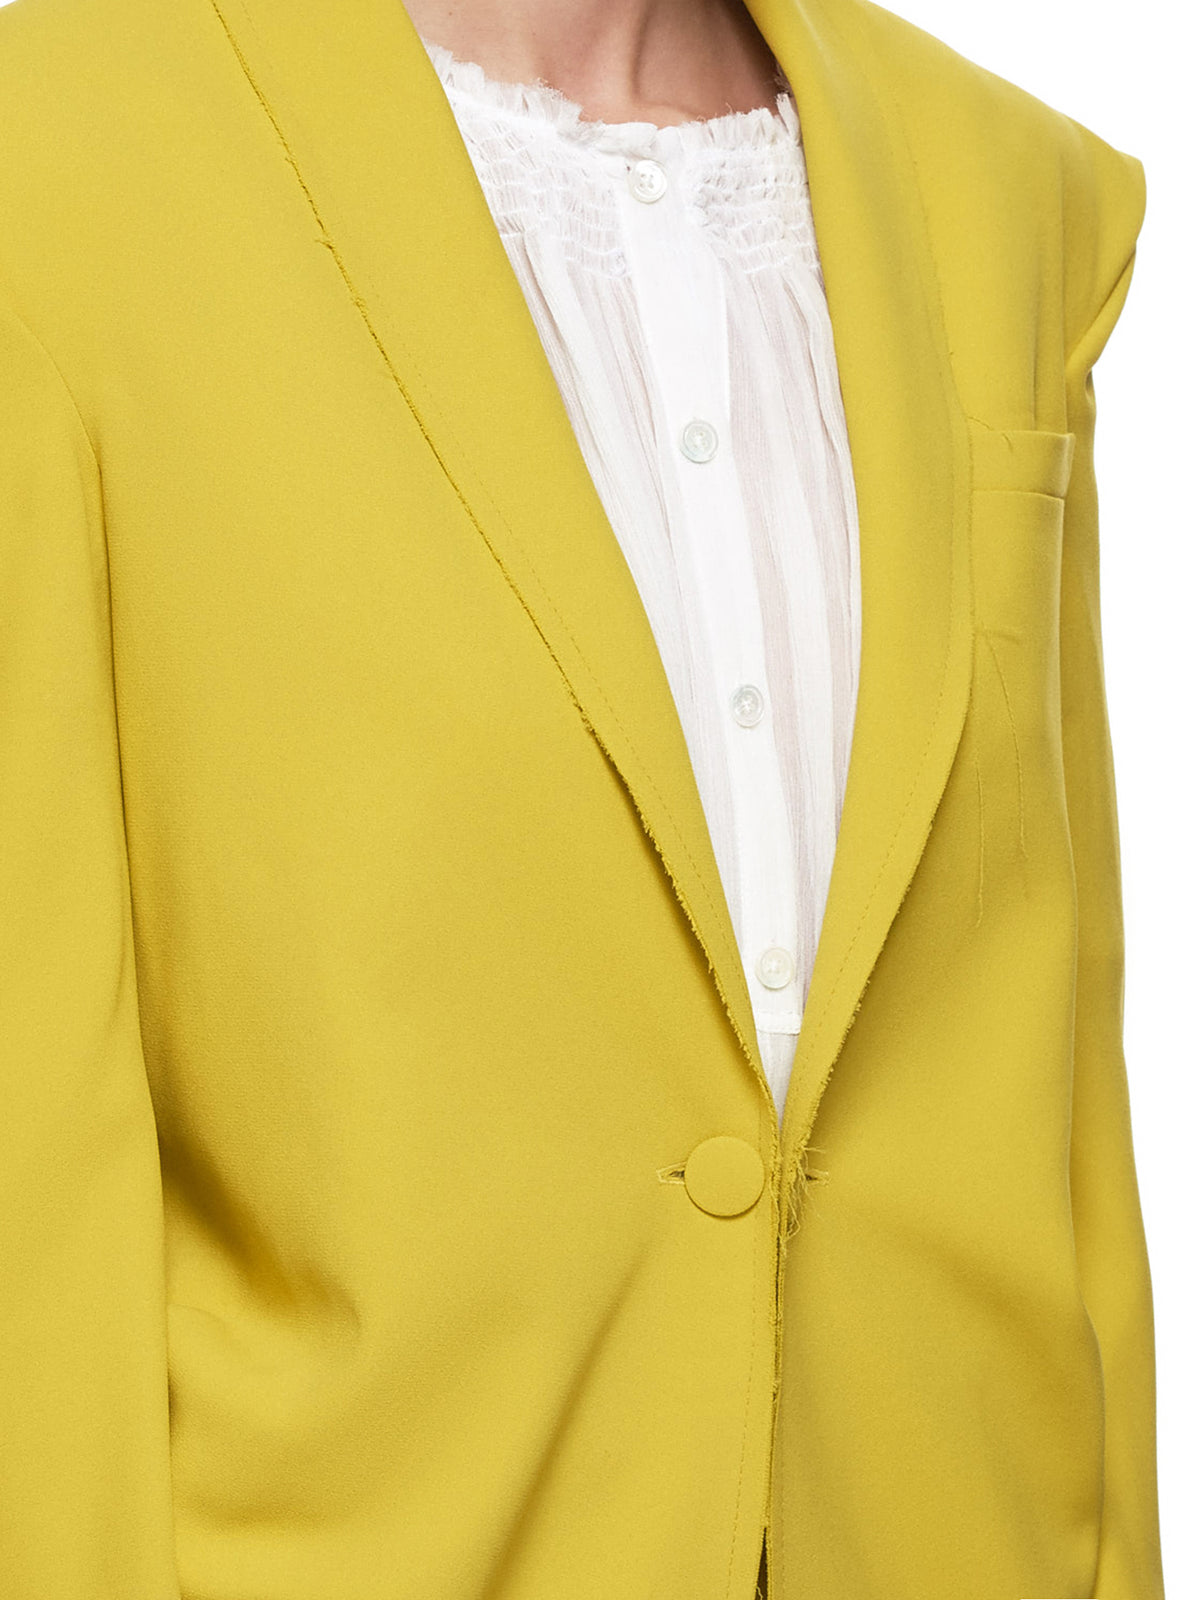 'Icon Tuxedo Blazer' (9-ICON-YELLOW)